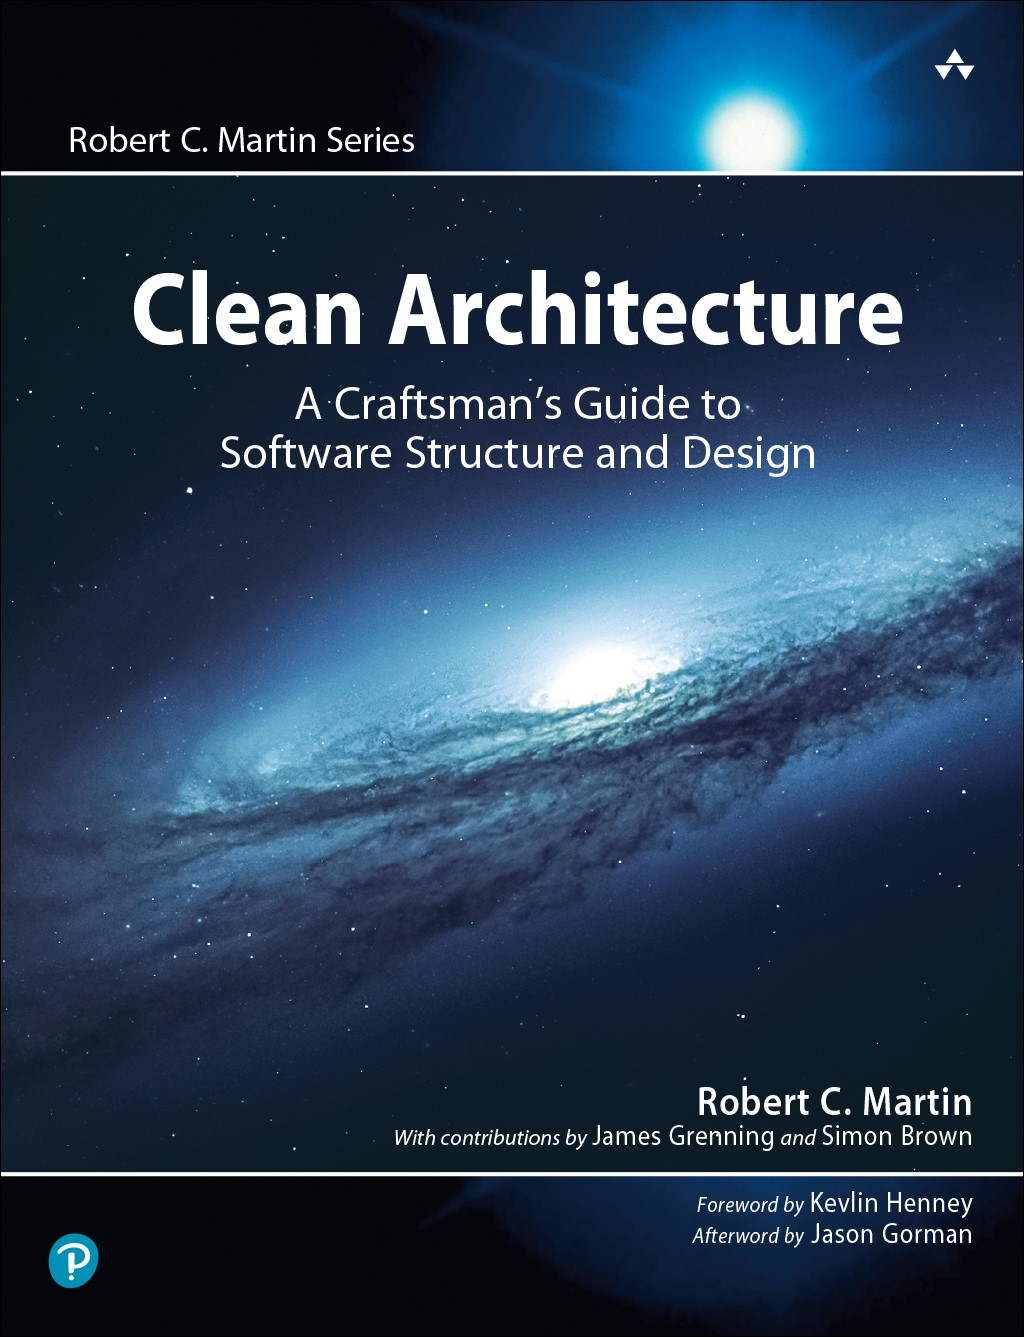 "Clean Archictecture"" border="